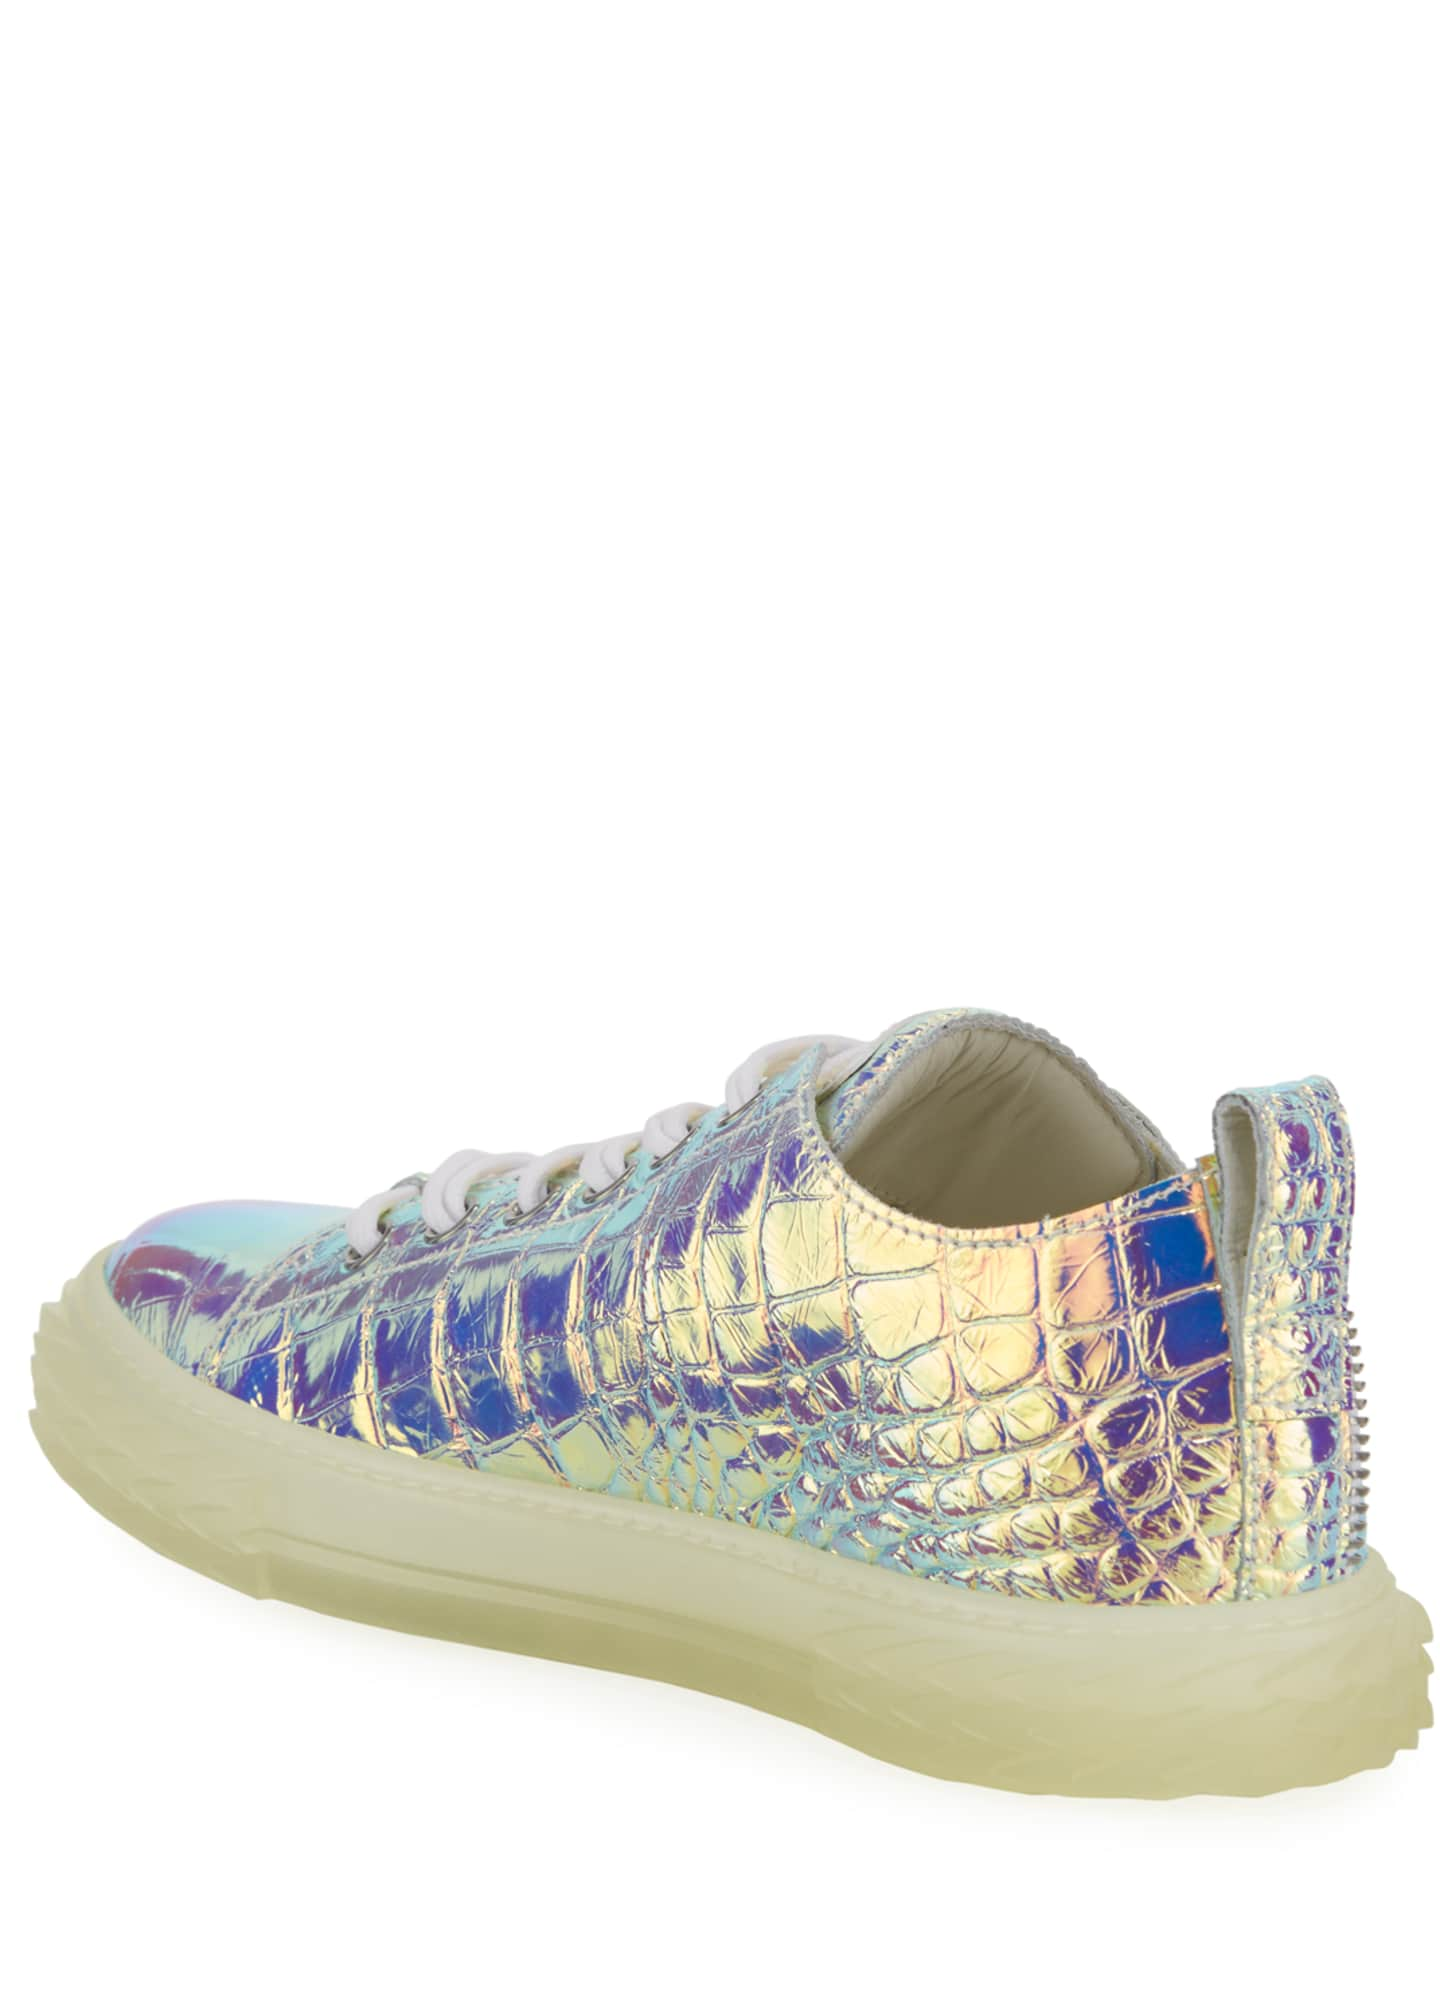 Image 4 of 4: Men's Iridescent Croc-Embossed Sneakers